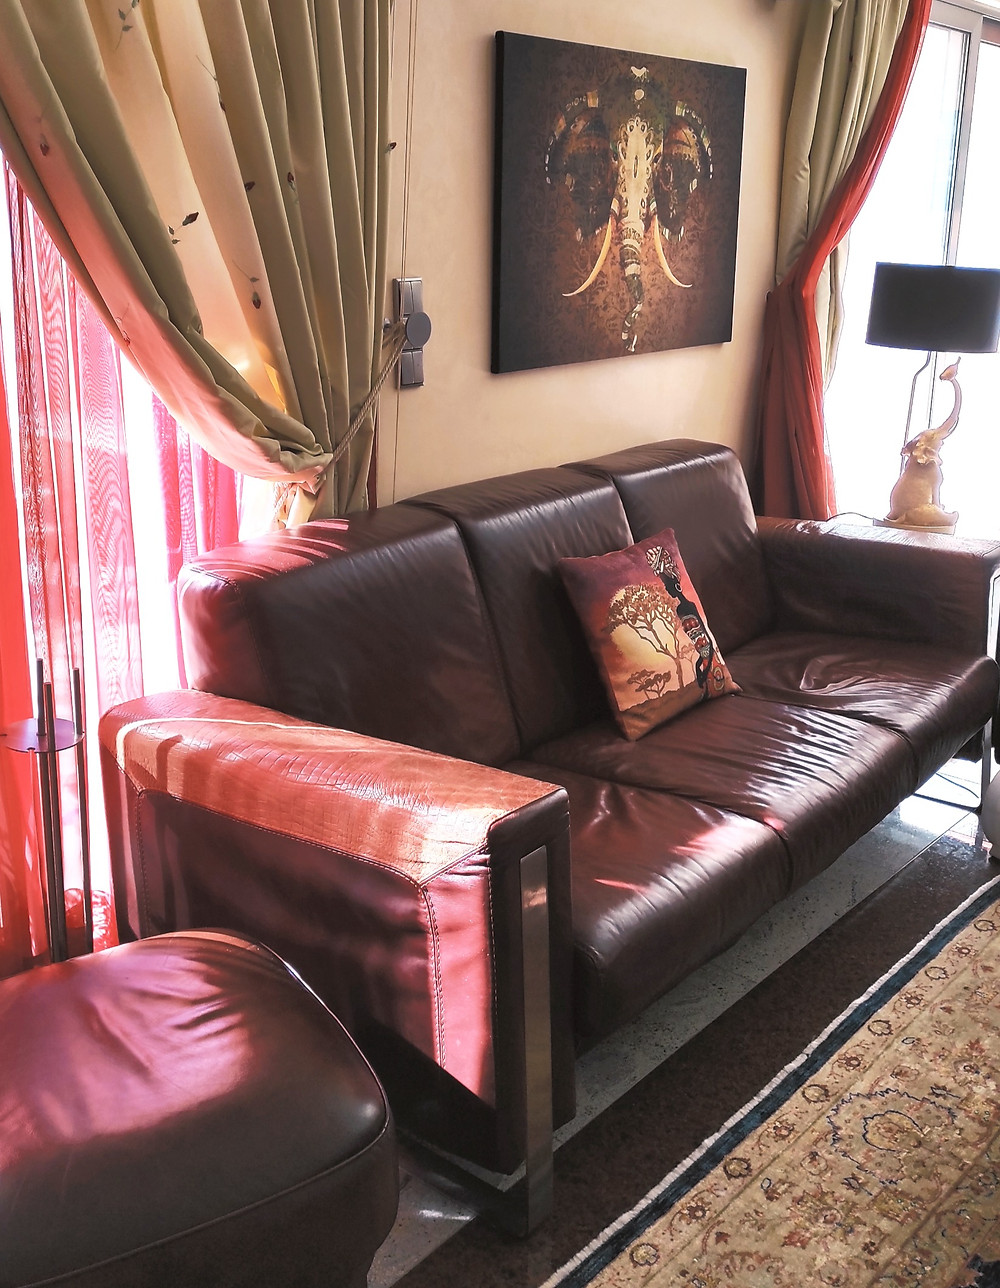 livingroom-home-interior-brown-sofa-couch-pillowswall-painting-red-decor